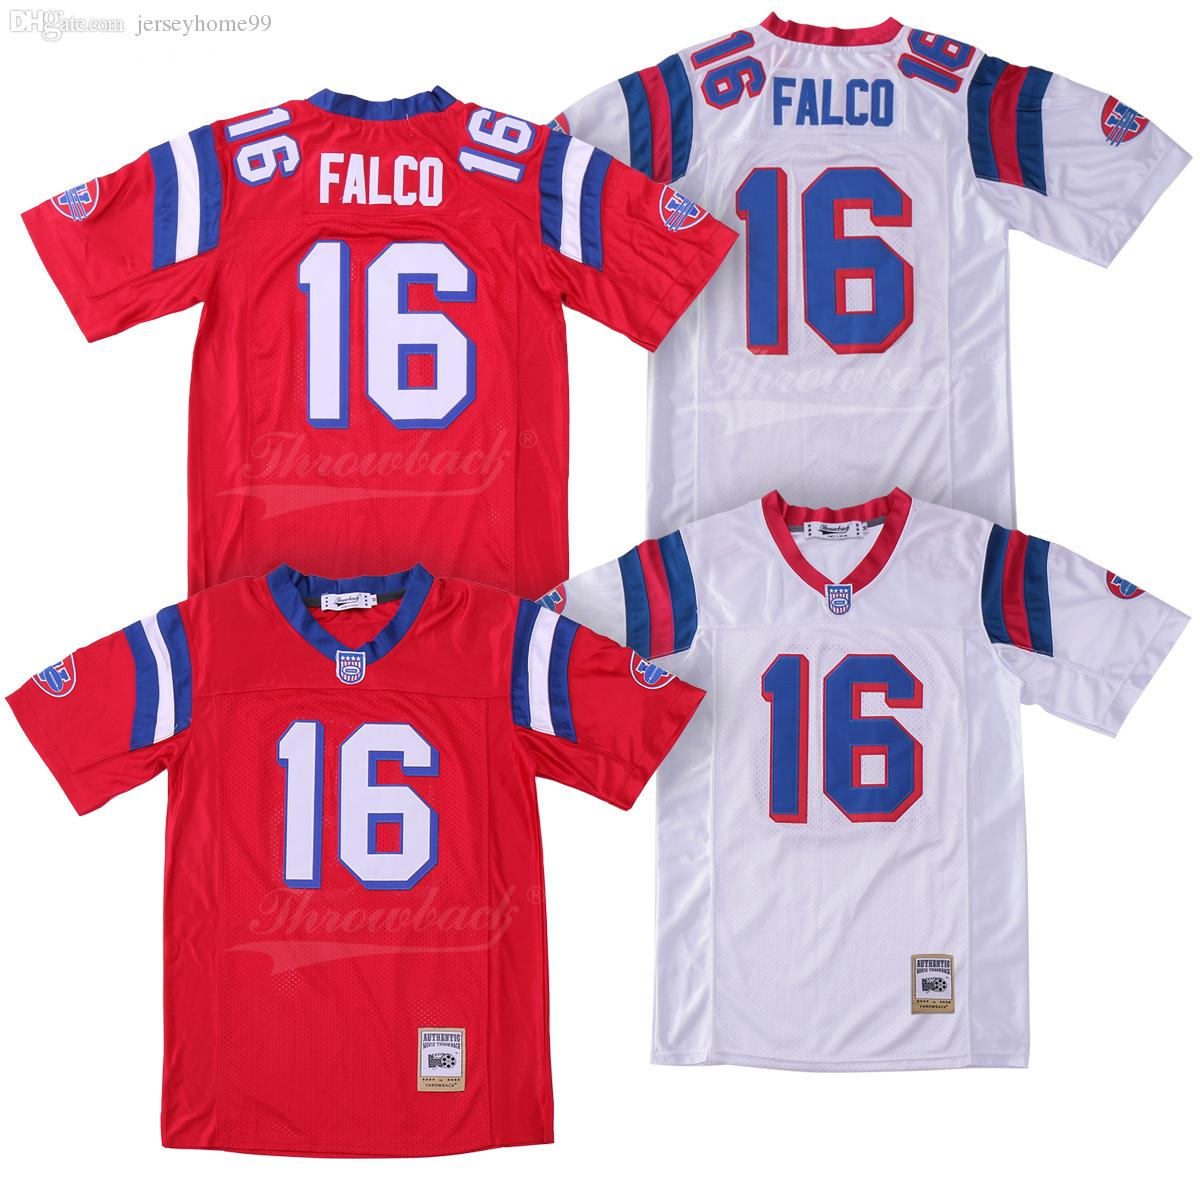 4822127ade8 Men's Shane Falco Jersey #16 The Replacements Sentinels Saved By The Bell  Stitched Film Football Jersey